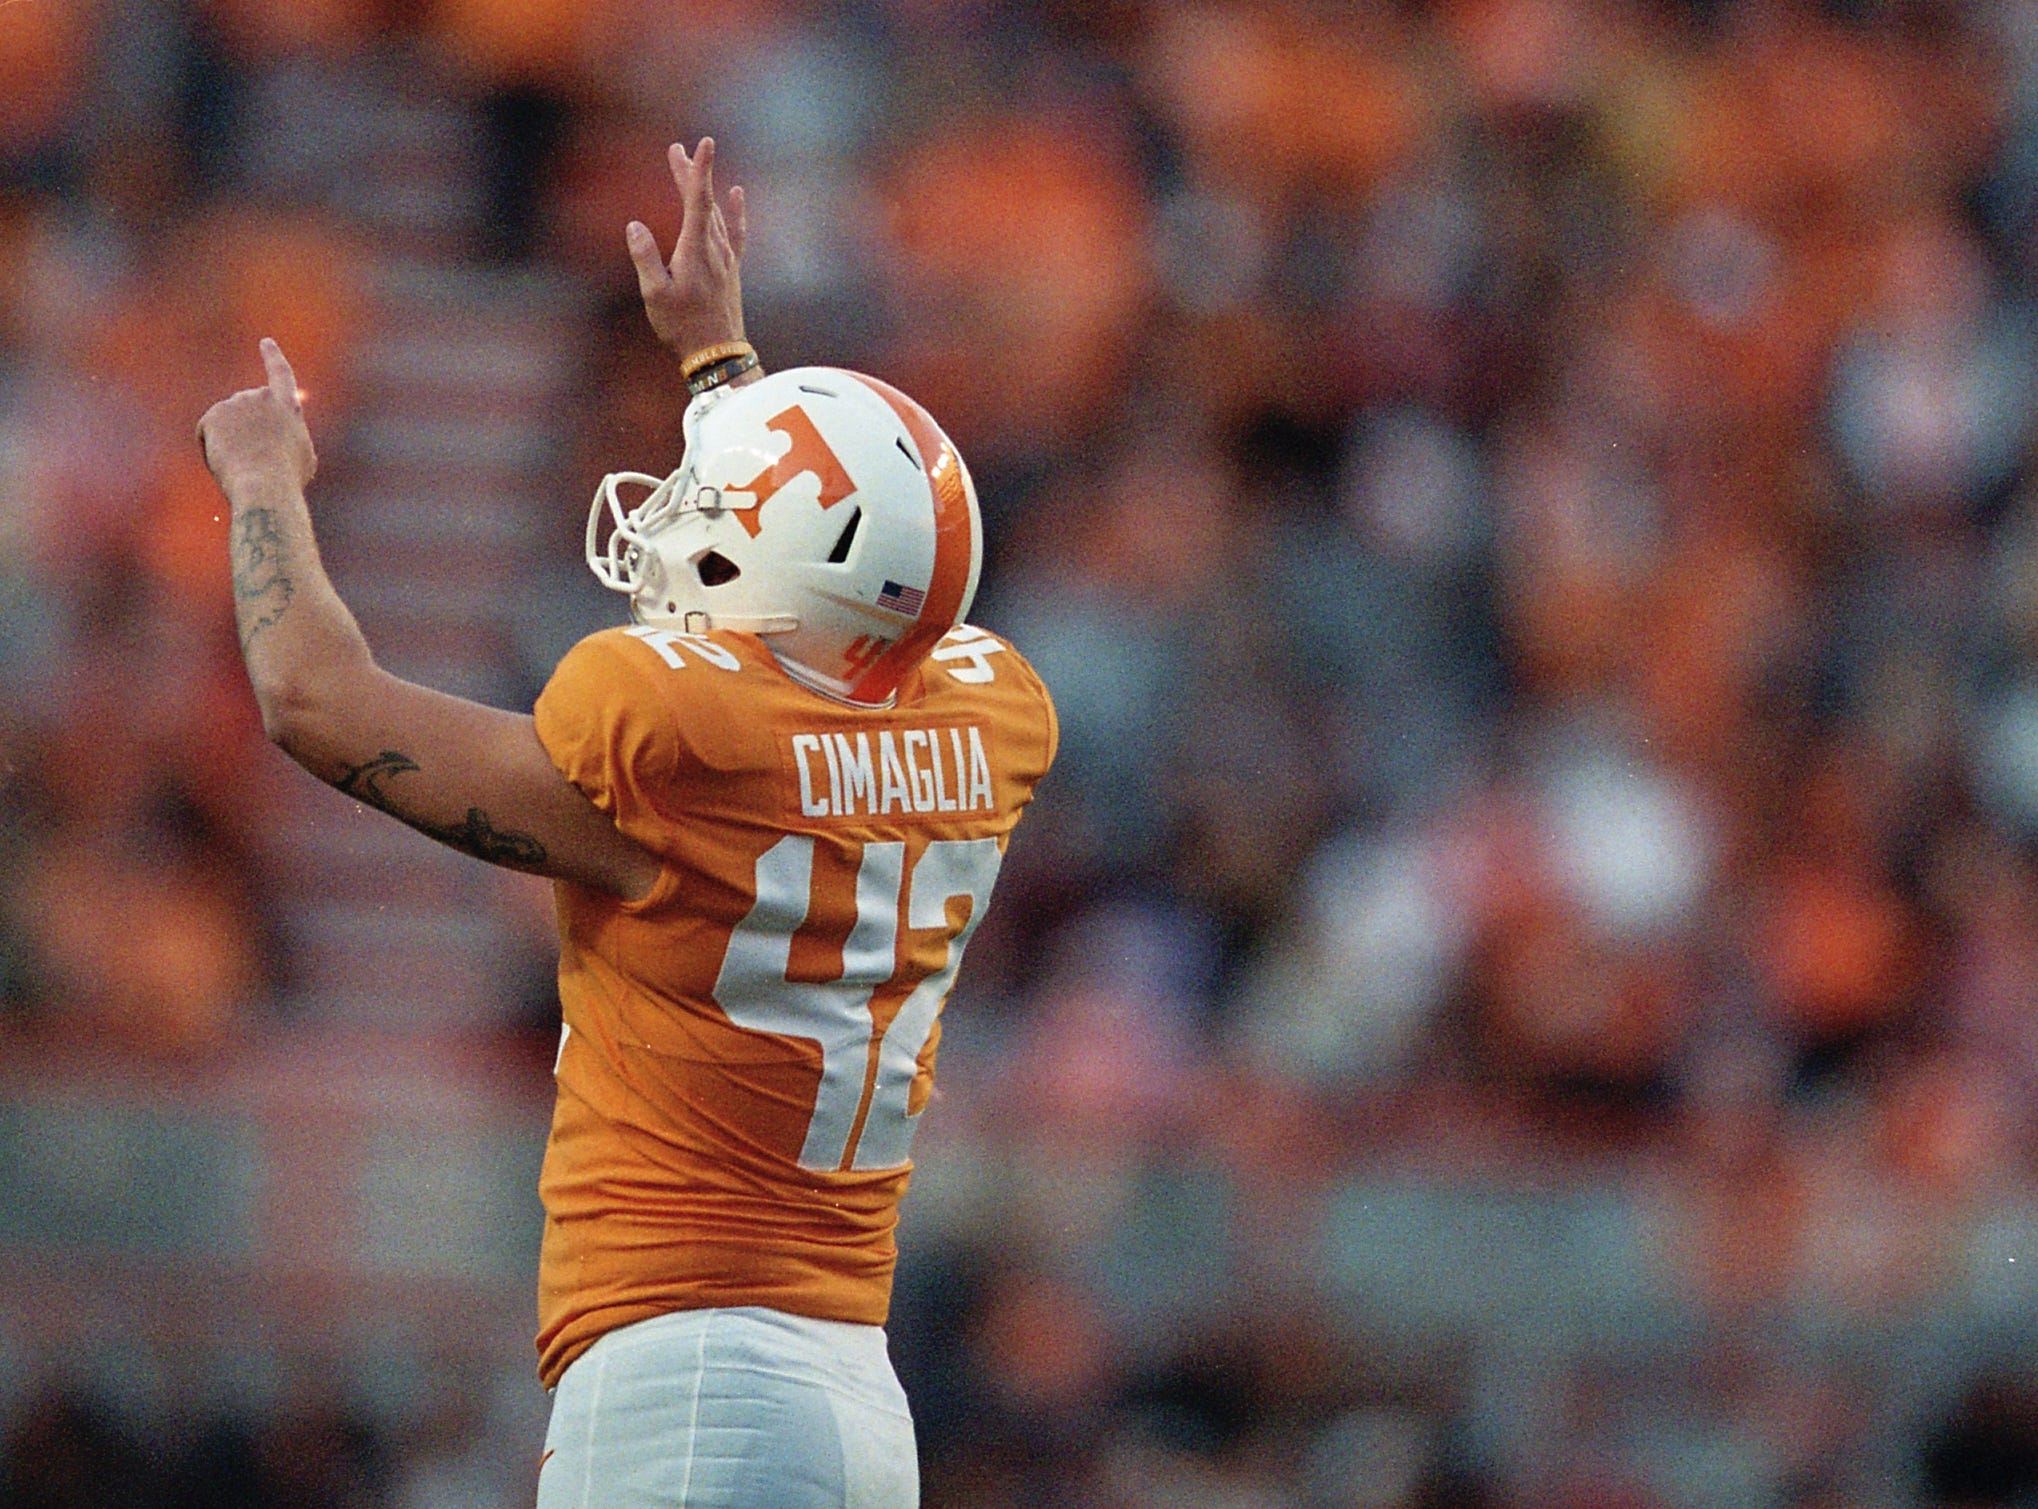 Tennessee placekicker Brent Cimaglia (42) celebrates after making a field goal during a game between Tennessee and Missouri at Neyland Stadium in Knoxville, Tennessee on Saturday, November 17, 2018.